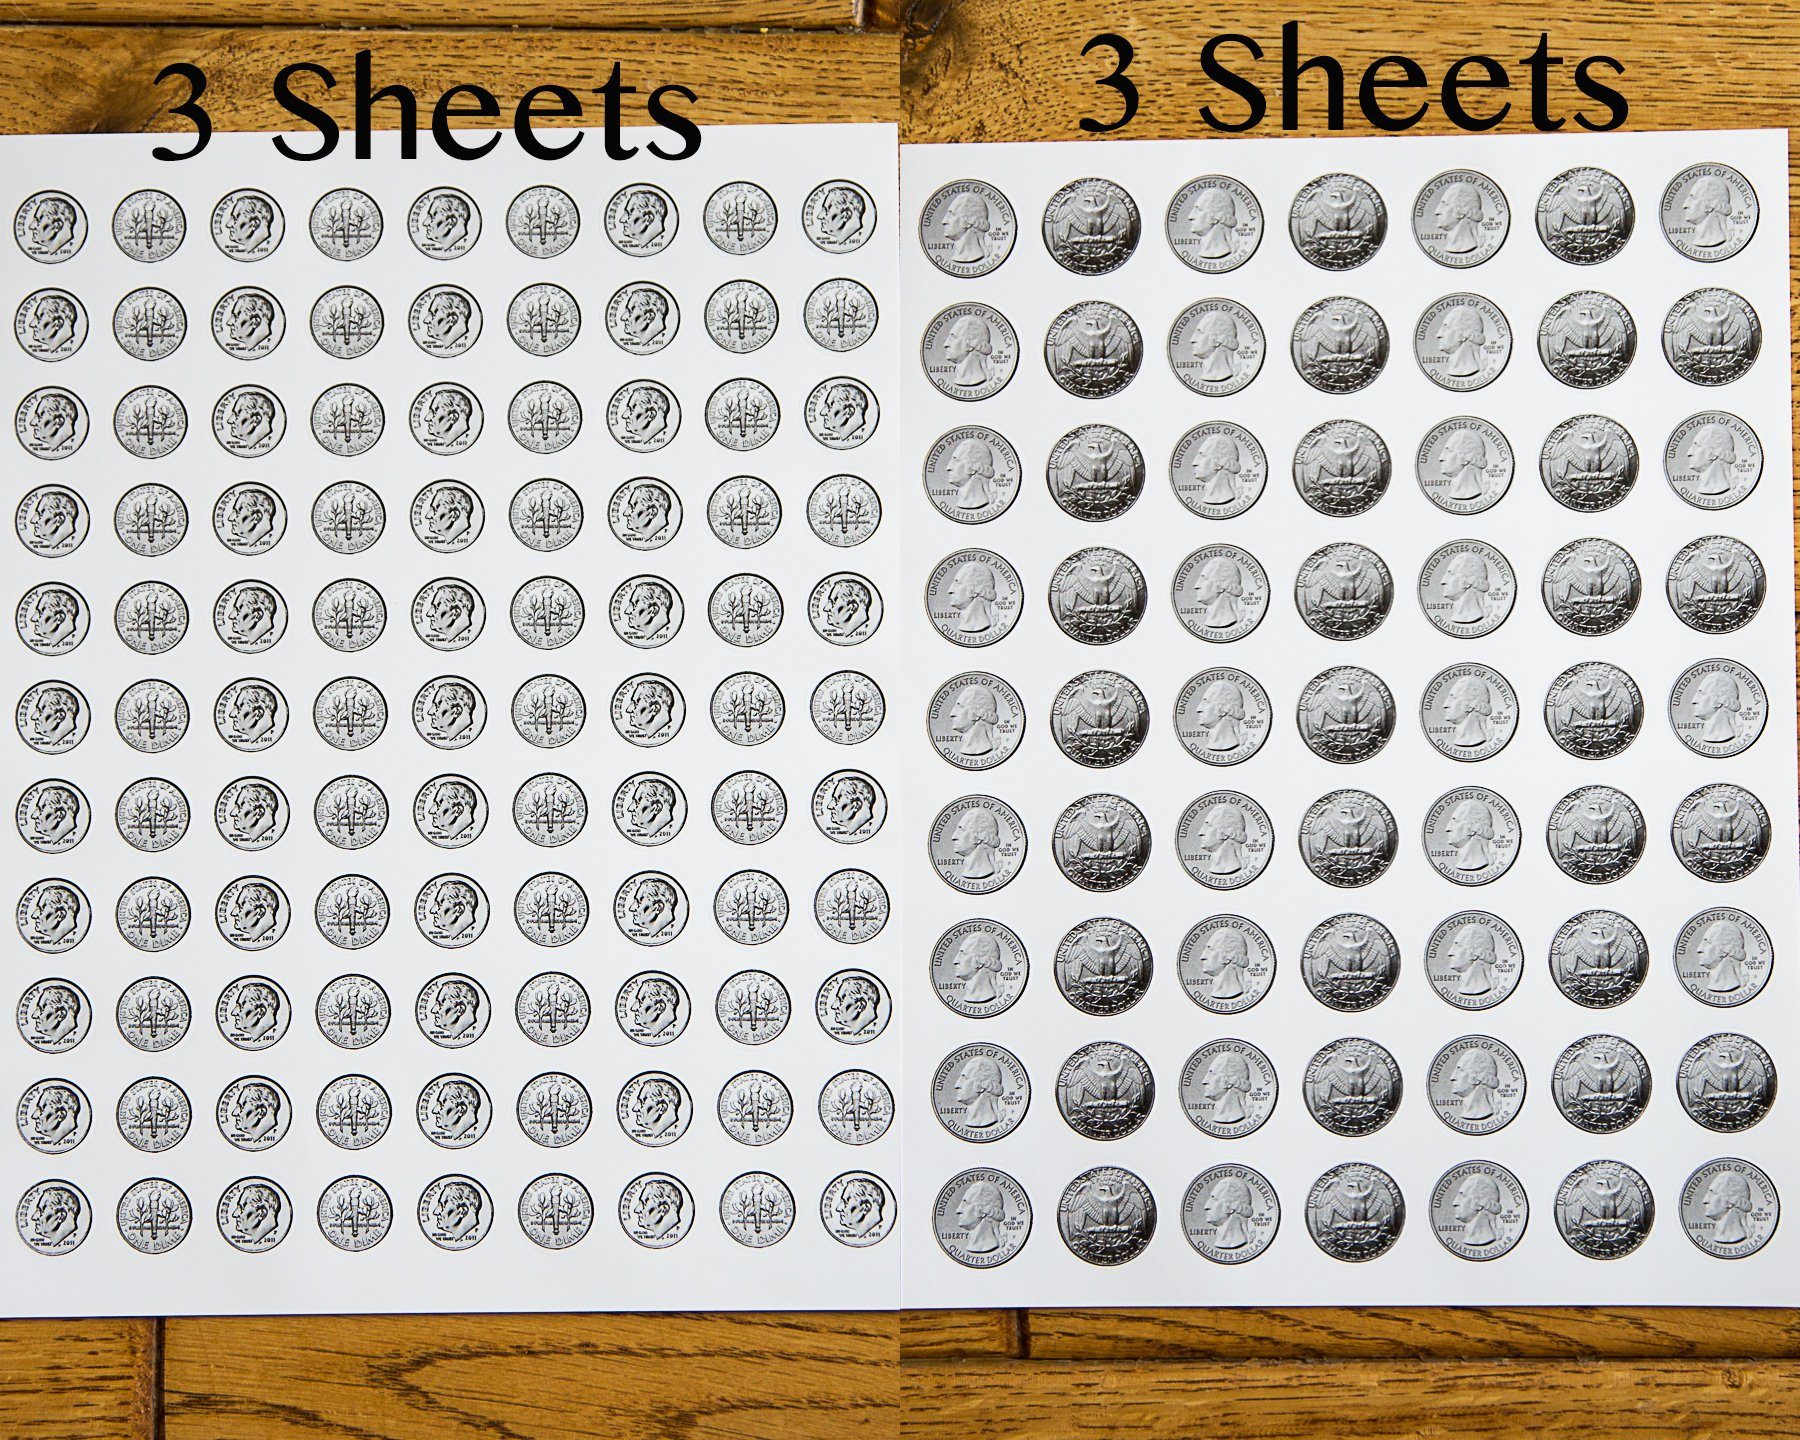 1038 Pieces U.S. Coin & Currency Stickers | For Classroom & Home Use | Extra Strong Adhesive | Realistic Size | 14 Total Sheets | By PureBloom Products by PureBloom Products (Image #8)